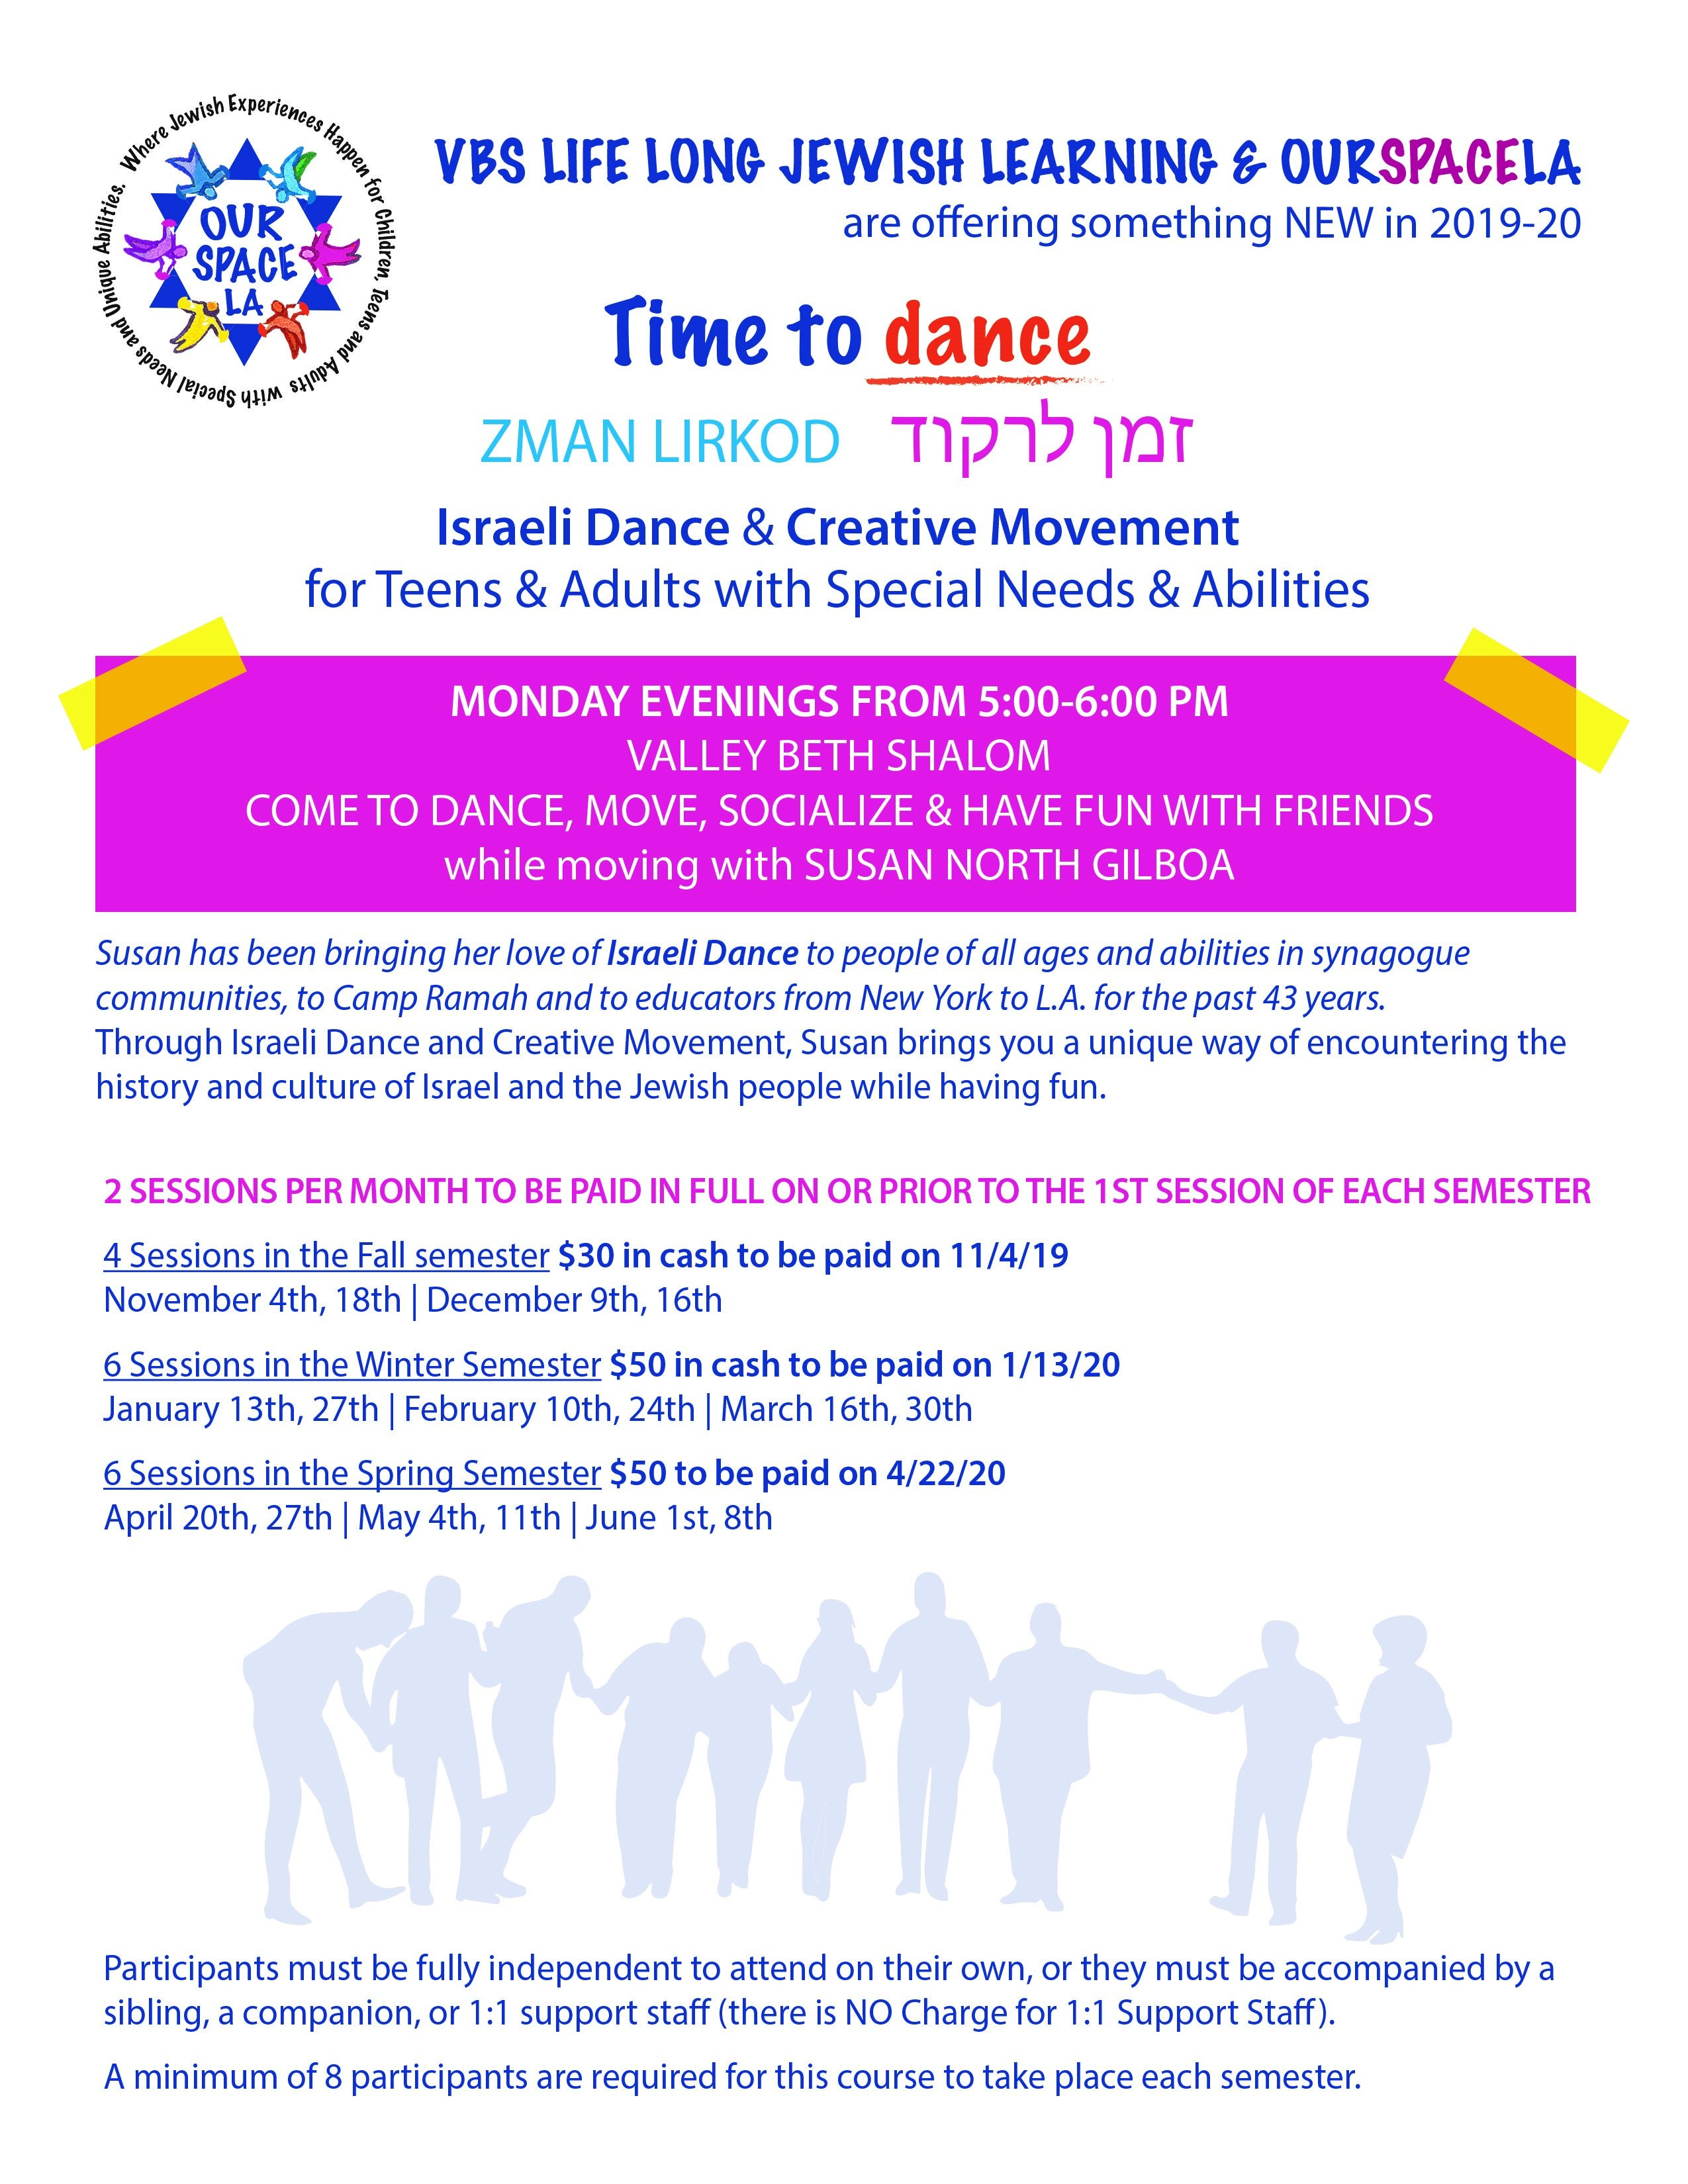 Time to Dance | HaMercaz | The Jewish Federation of Greater Los Angeles